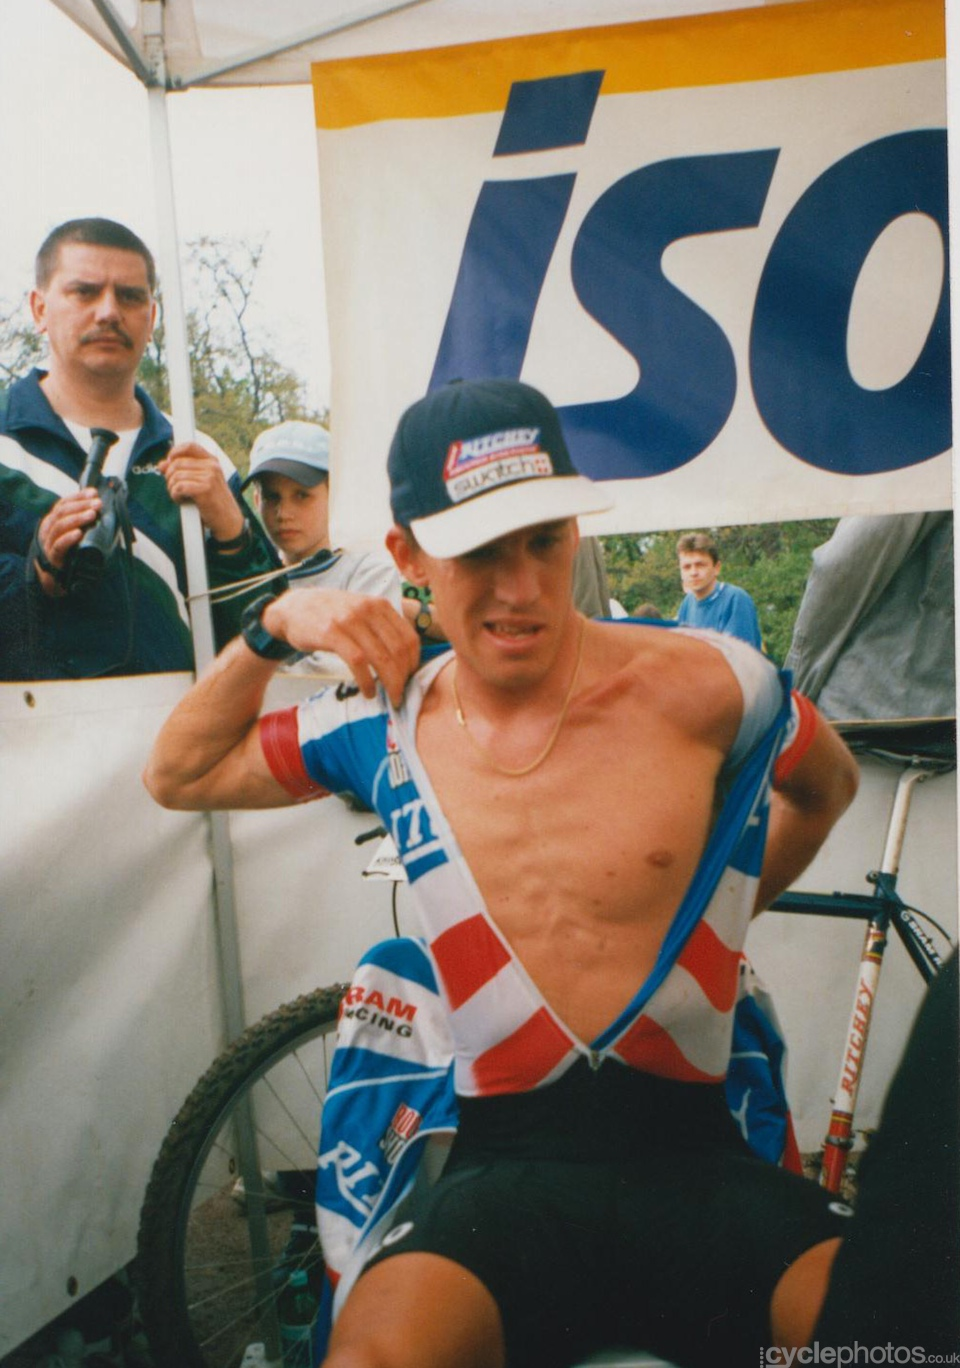 Frischi cleans himself up before the climbing on the top of the podium